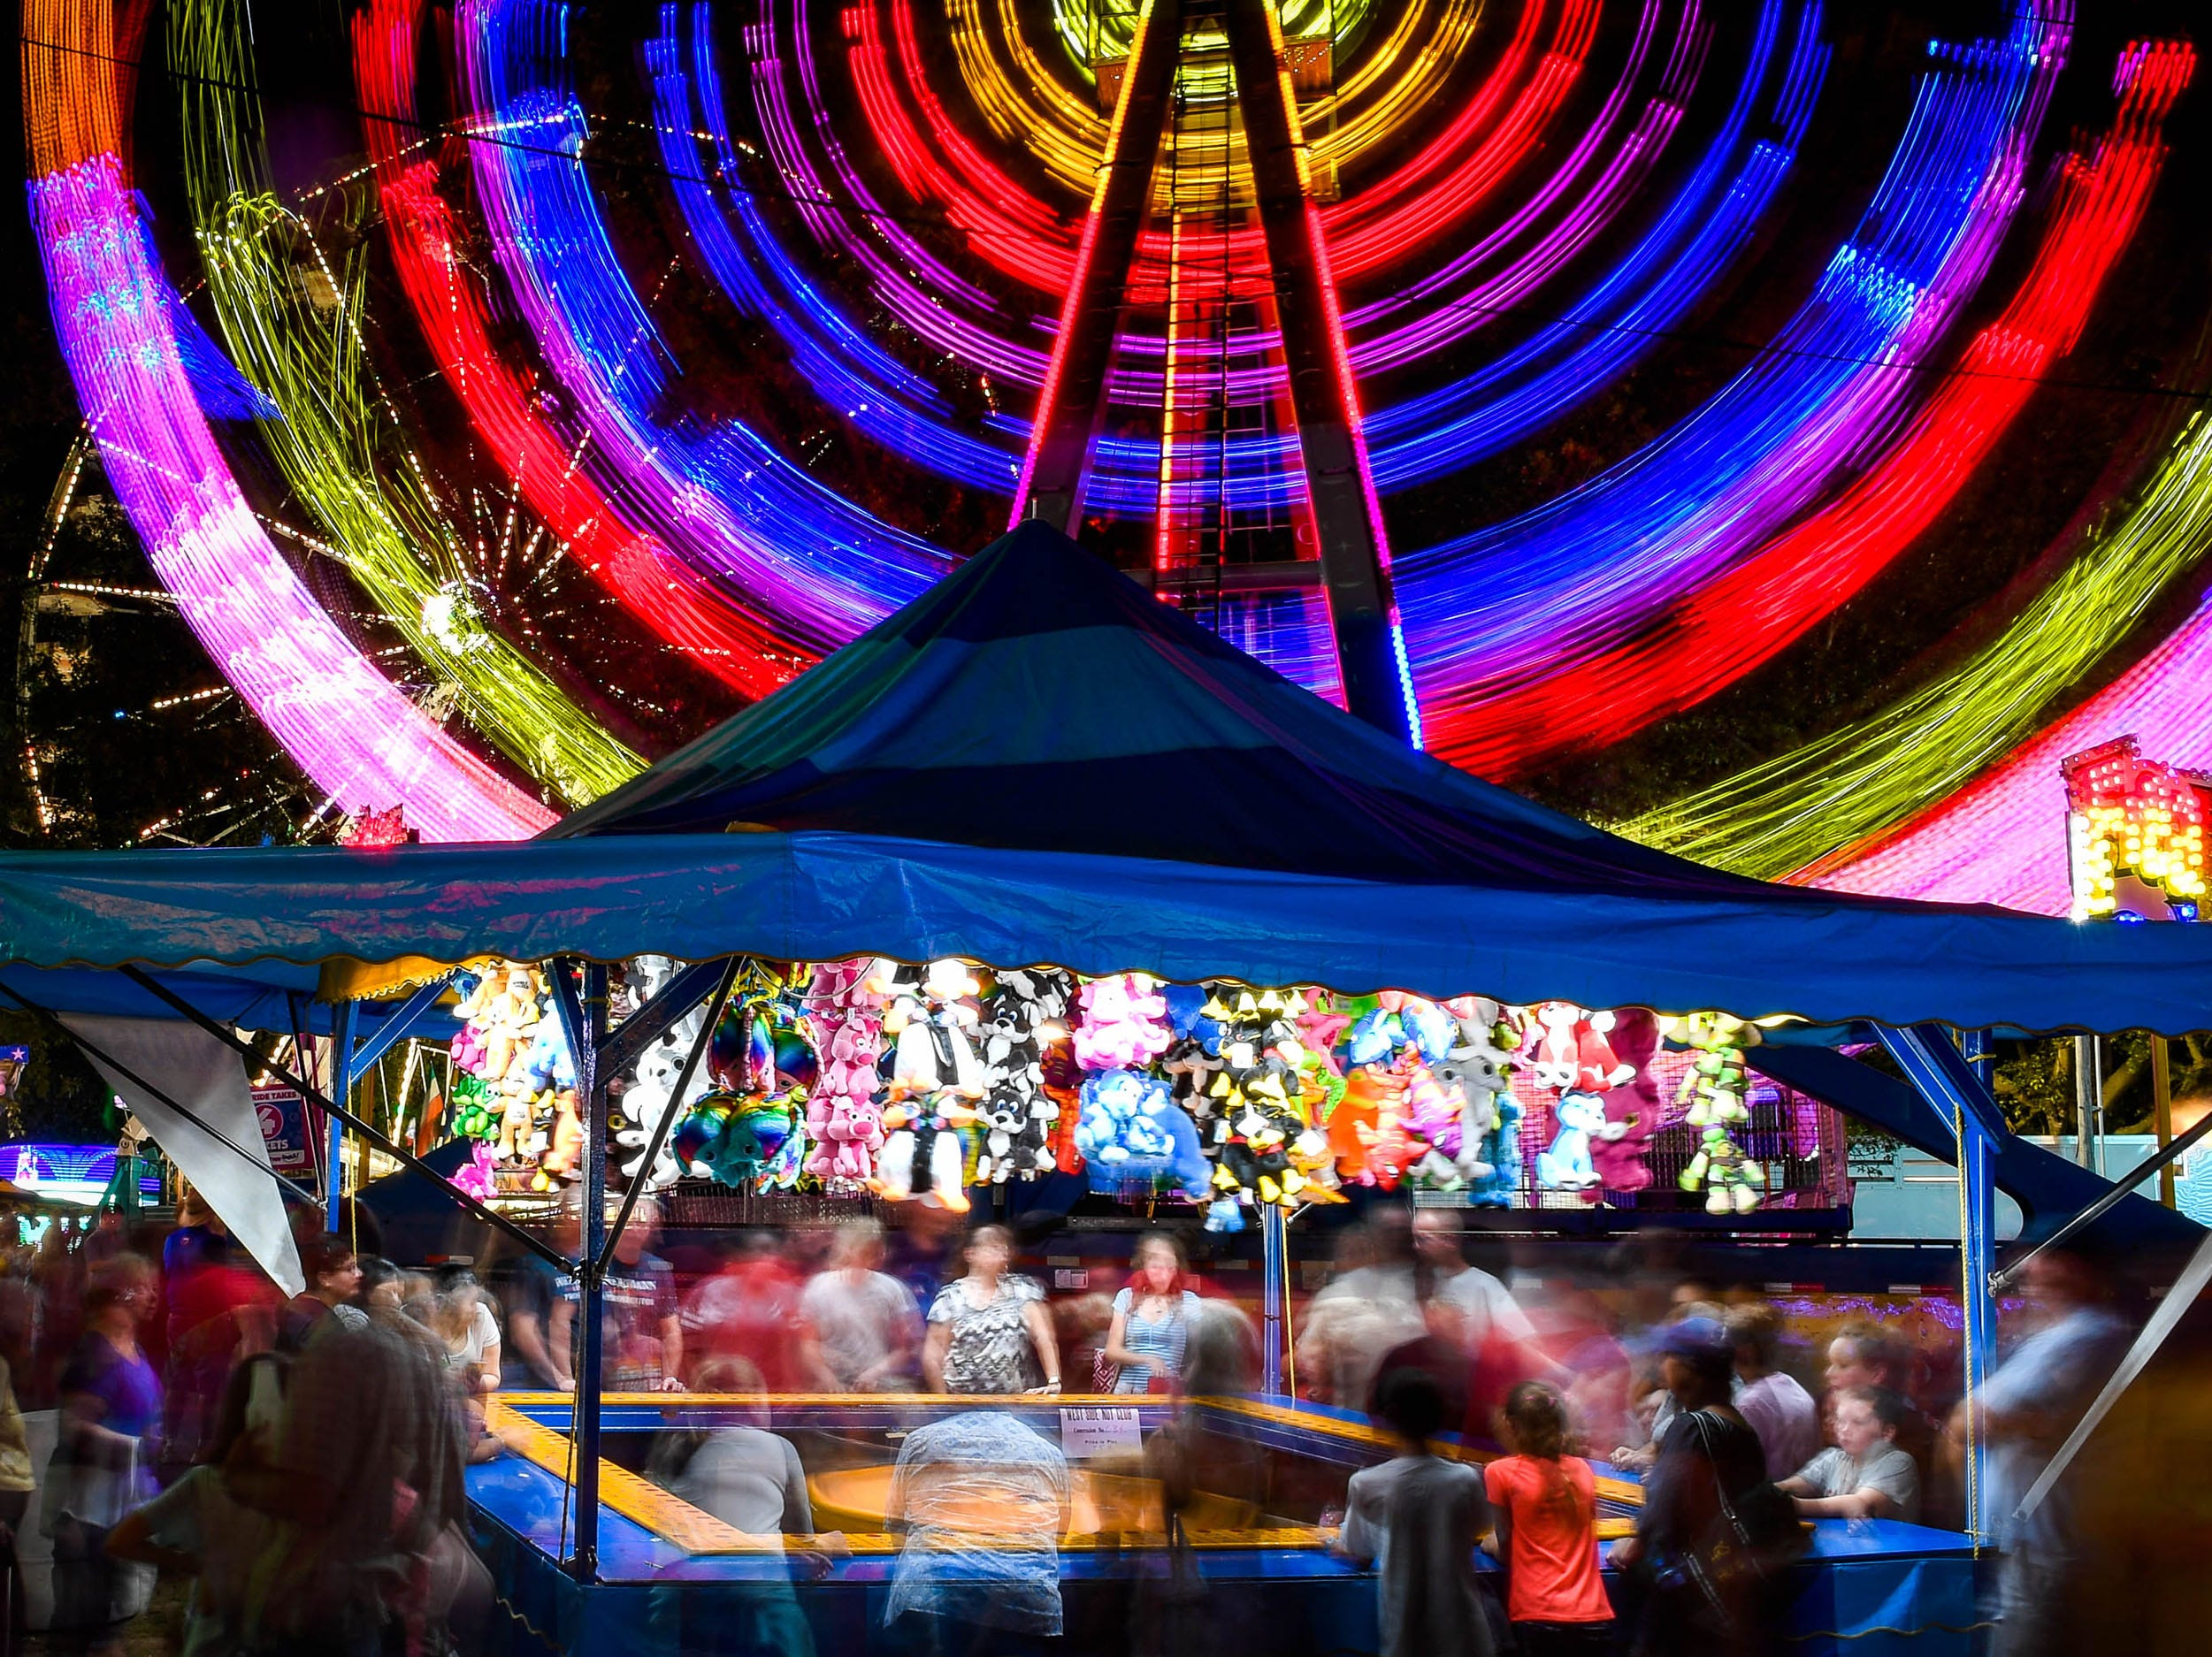 People play carnival games while the Freak Out ride weaves patterns in colored lights in the background of this 15 second time exposure at the West Side Nut Club's Fall Festival Wednesday, October 3, 2018.